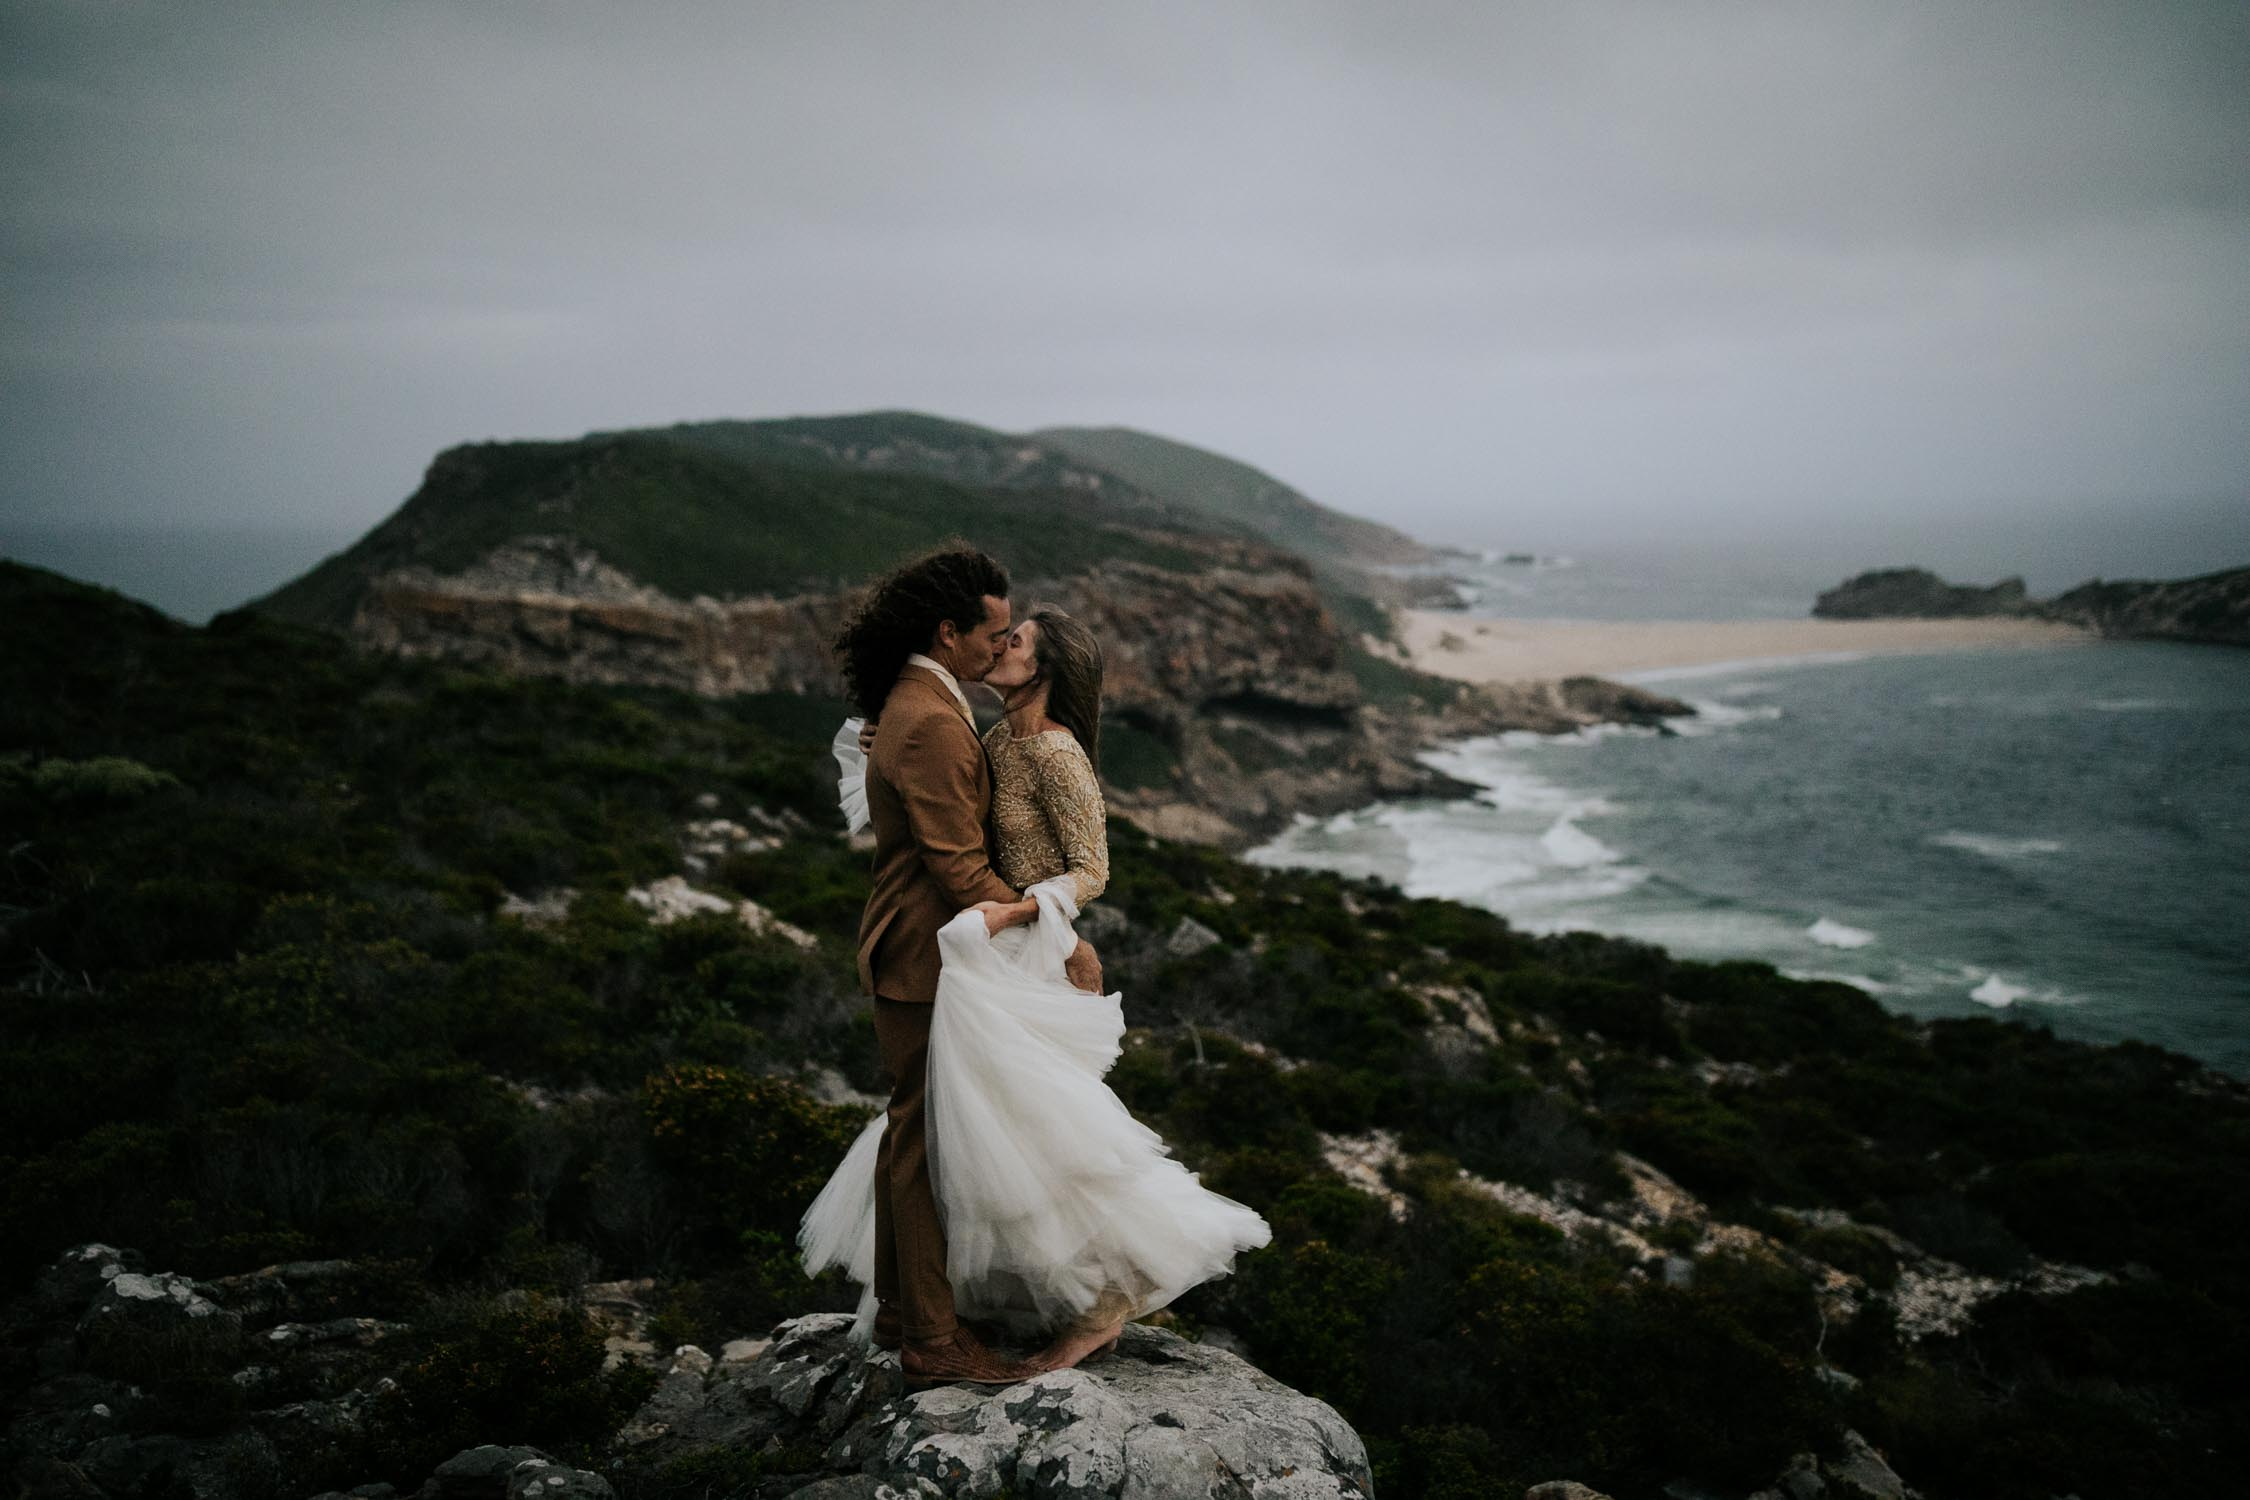 Epic Love over the ocean photo taken by adventure Vancouver Wedding Photographer